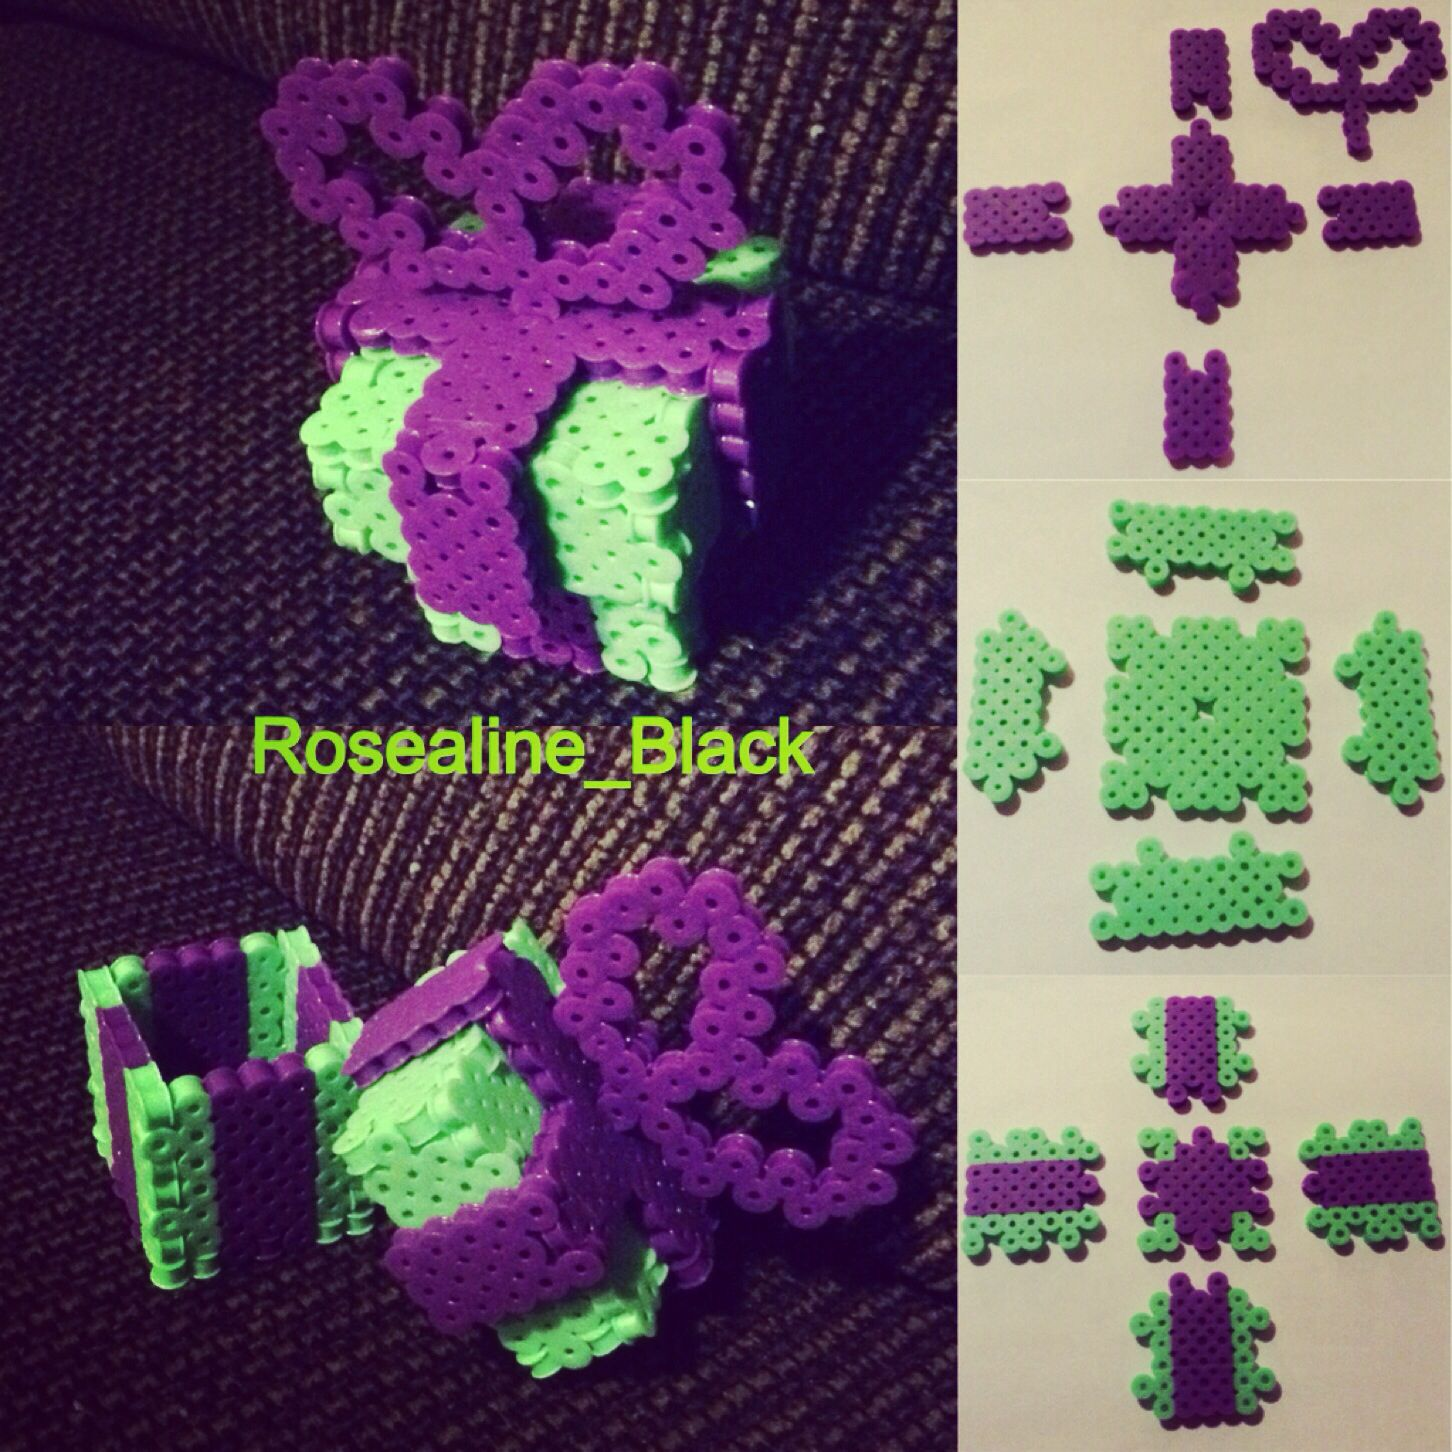 medium resolution of 3d perler bead box pattern designed and made by rosealine black